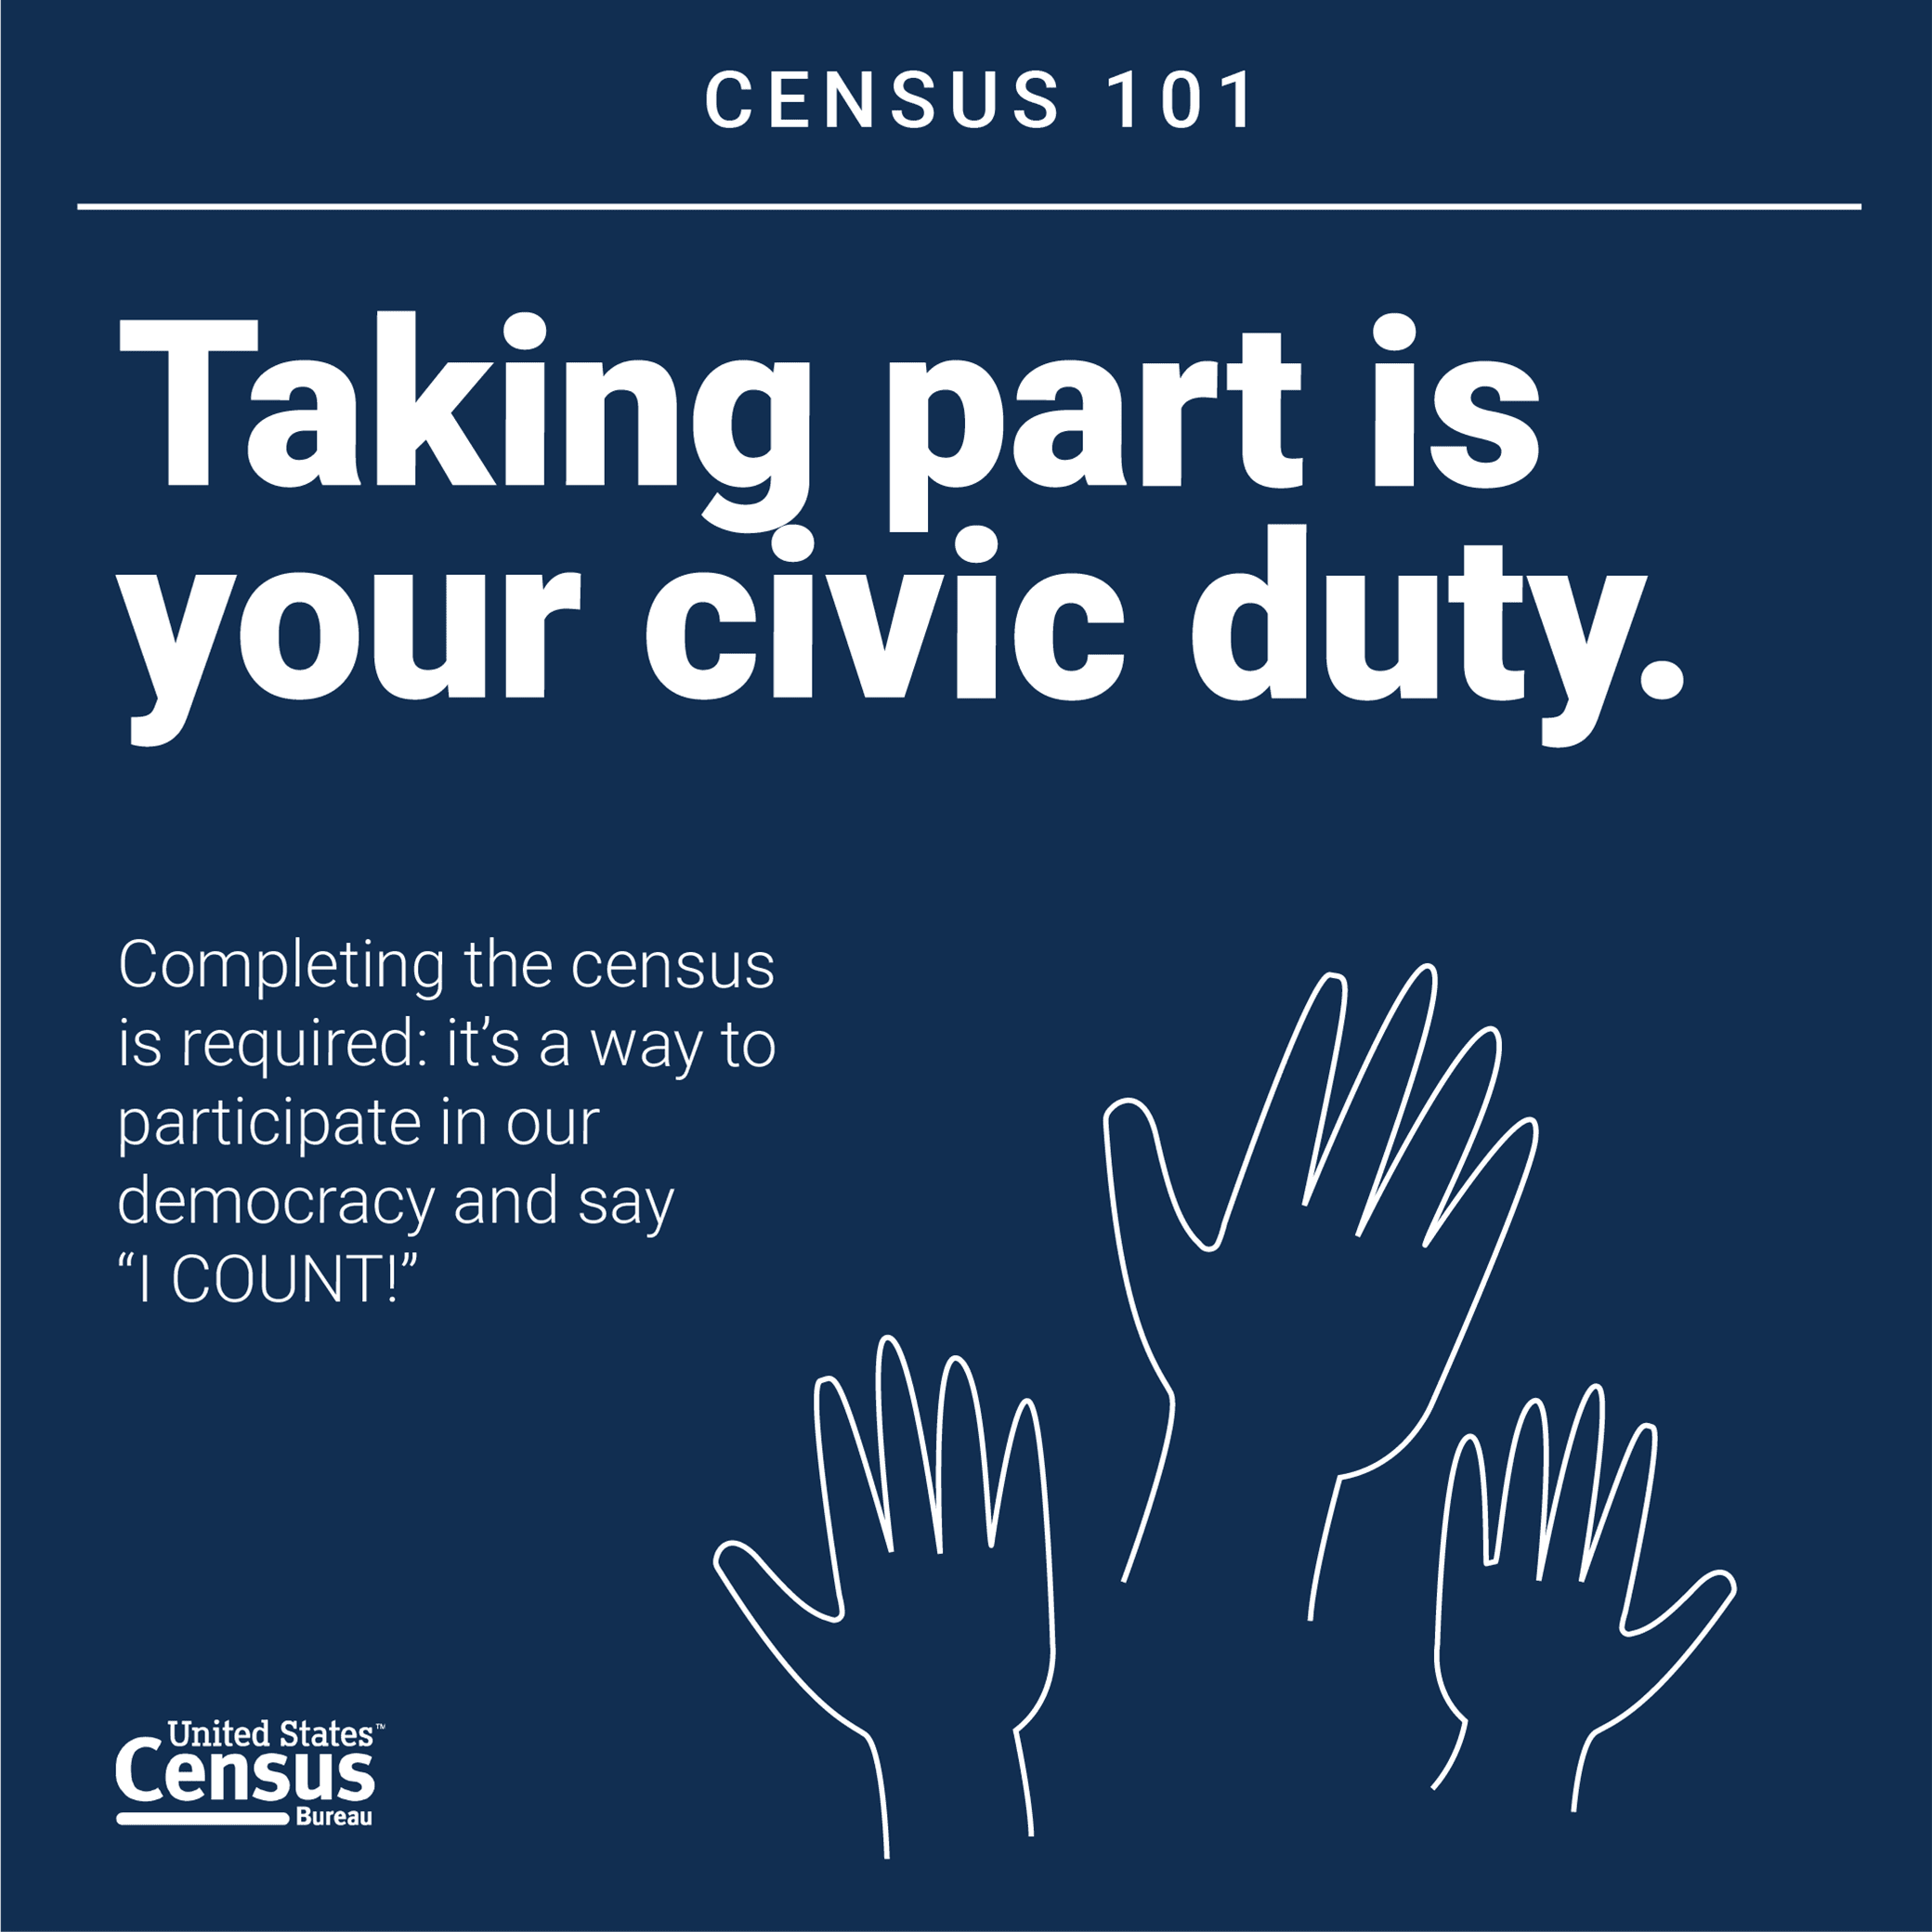 Taking part in the census is your civic duty.